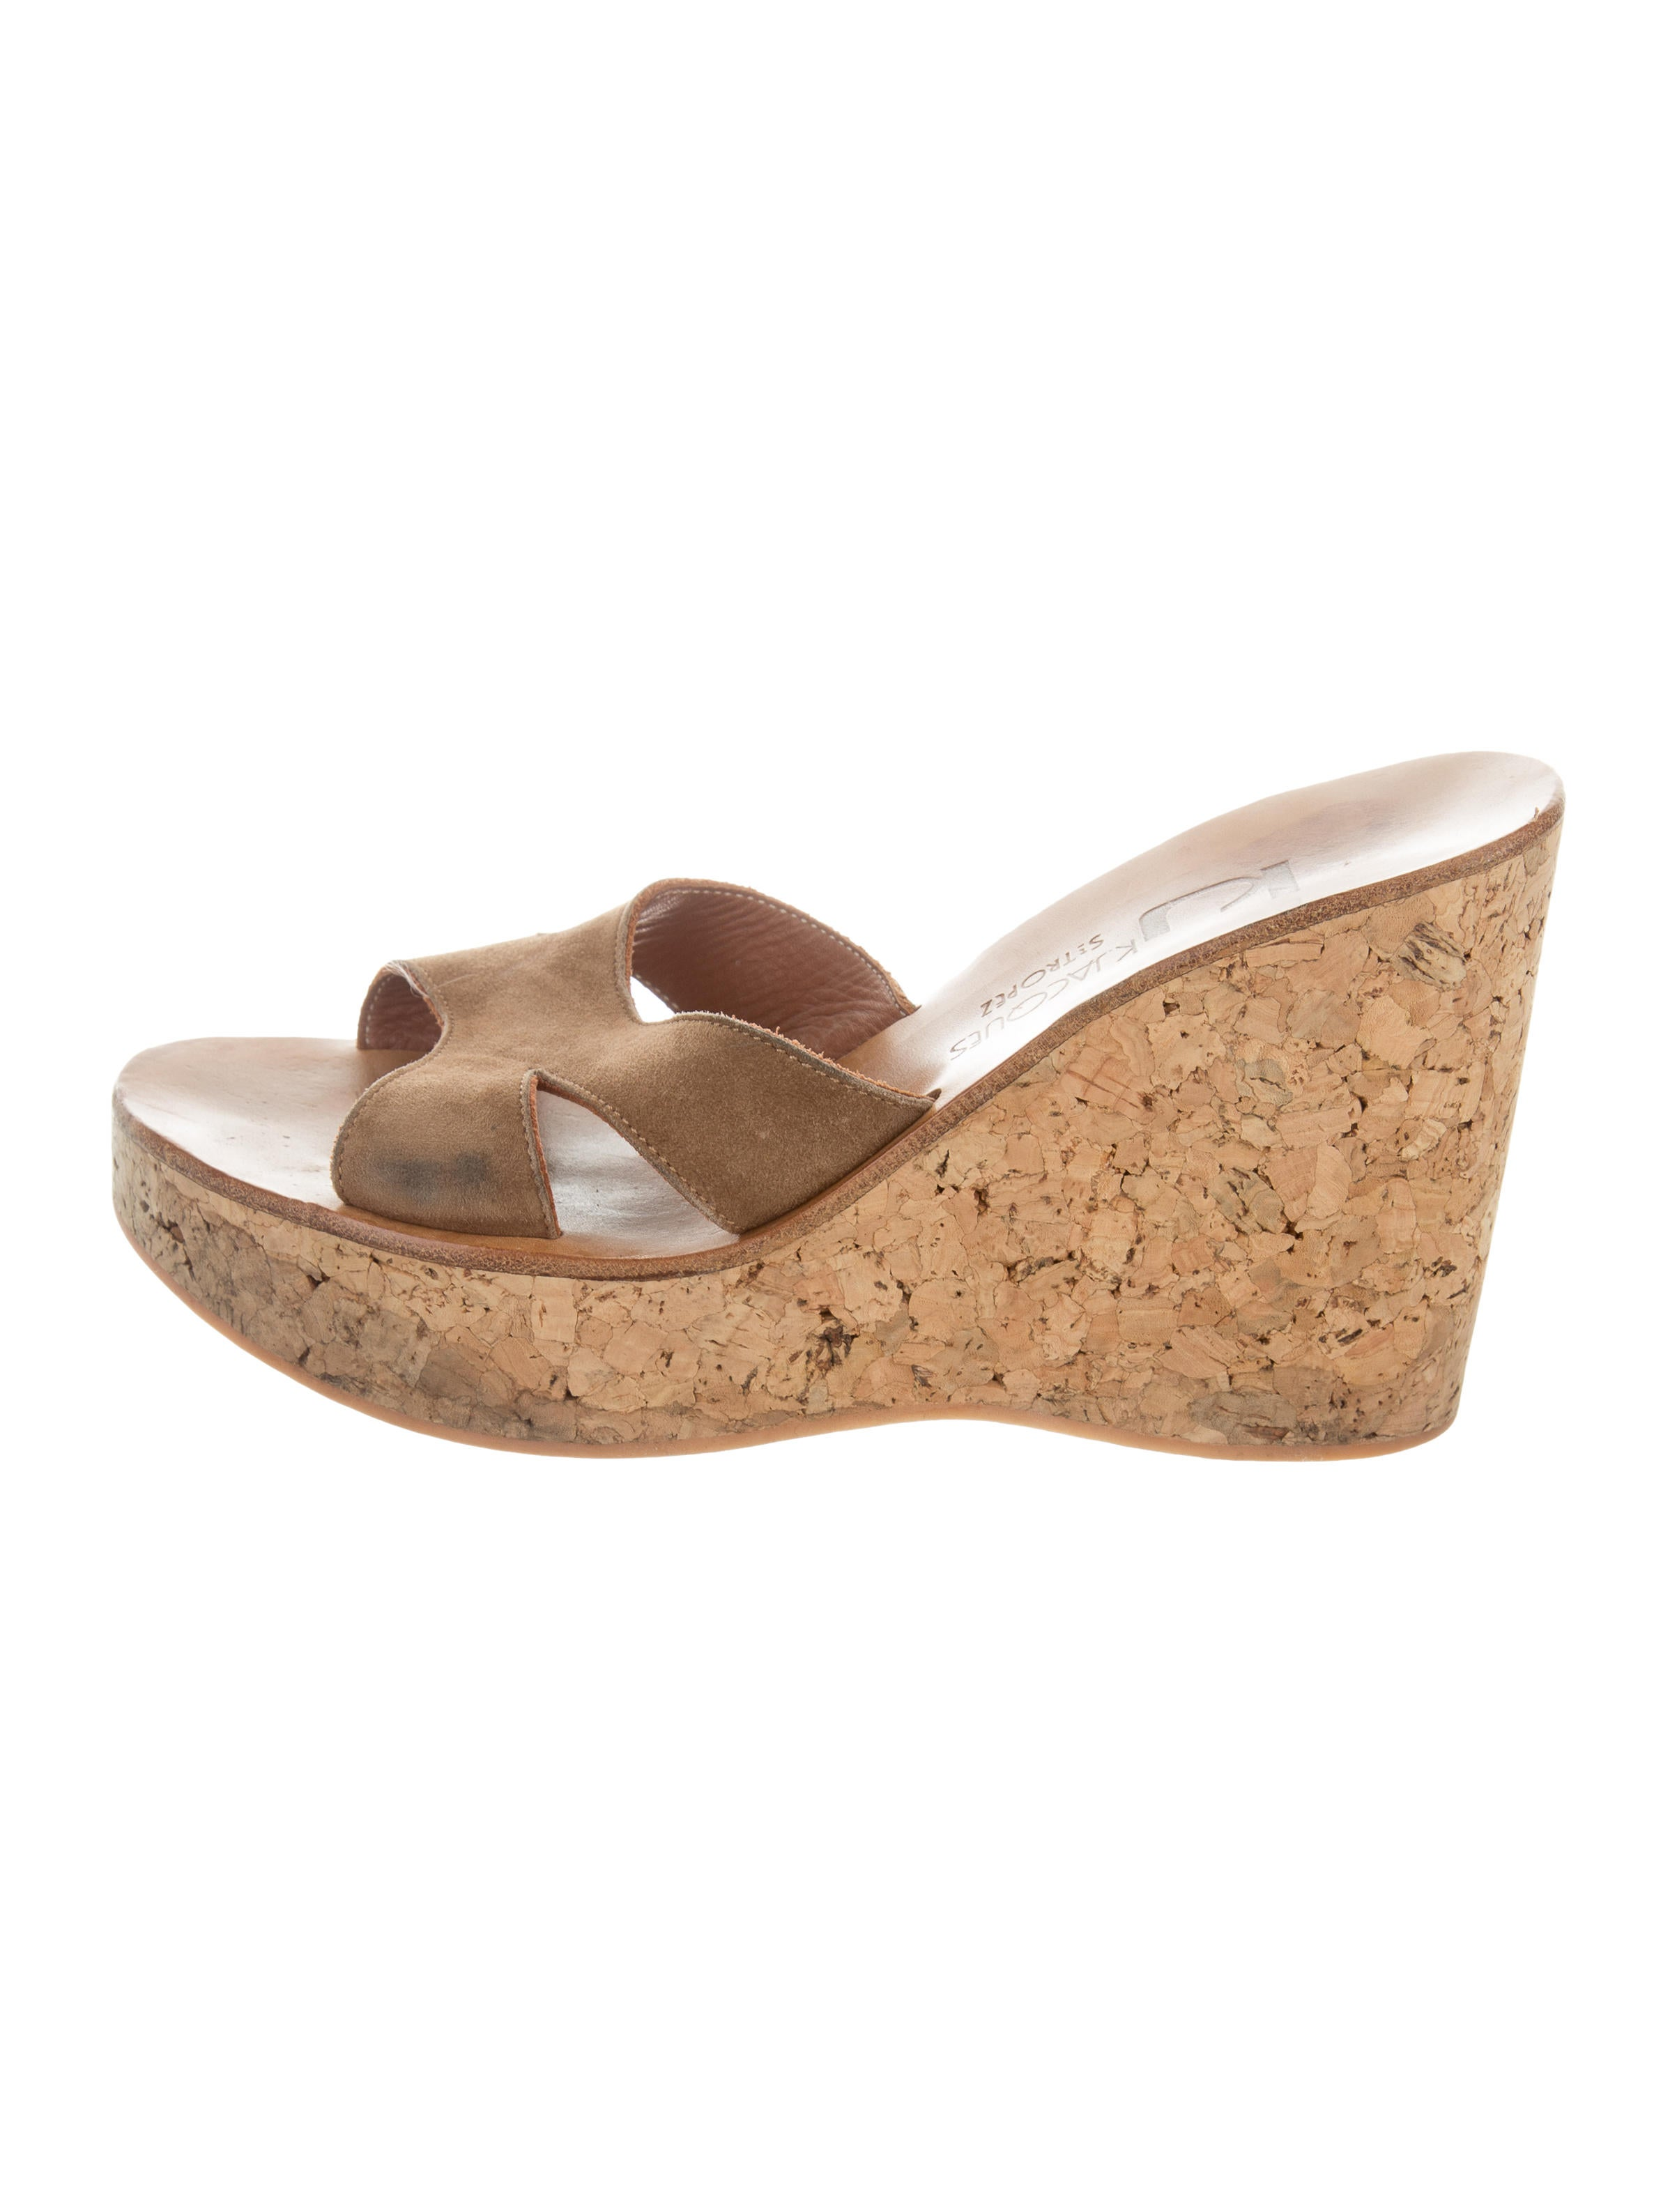 dd0f2899c3b0 K Jacques St. Tropez Kobe Slide Wedges - Shoes - WK021167